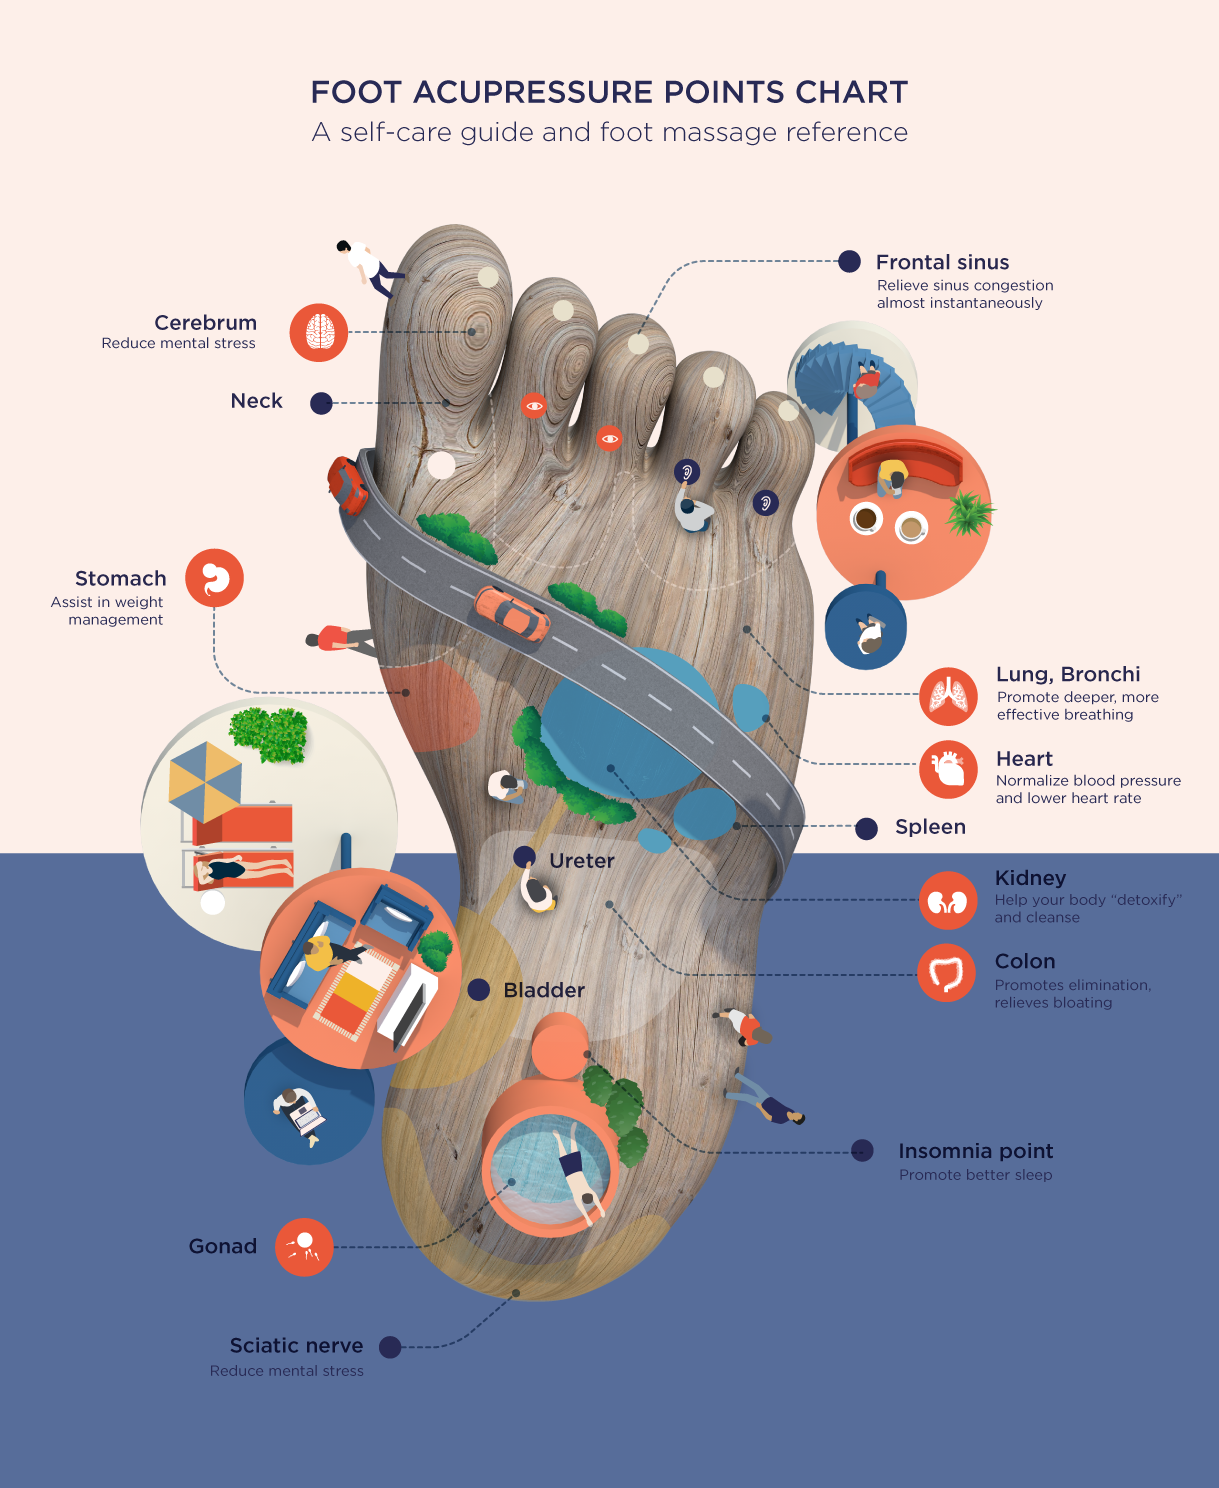 Foot Acupressure Points Chart: A Self-Care and Foot ...